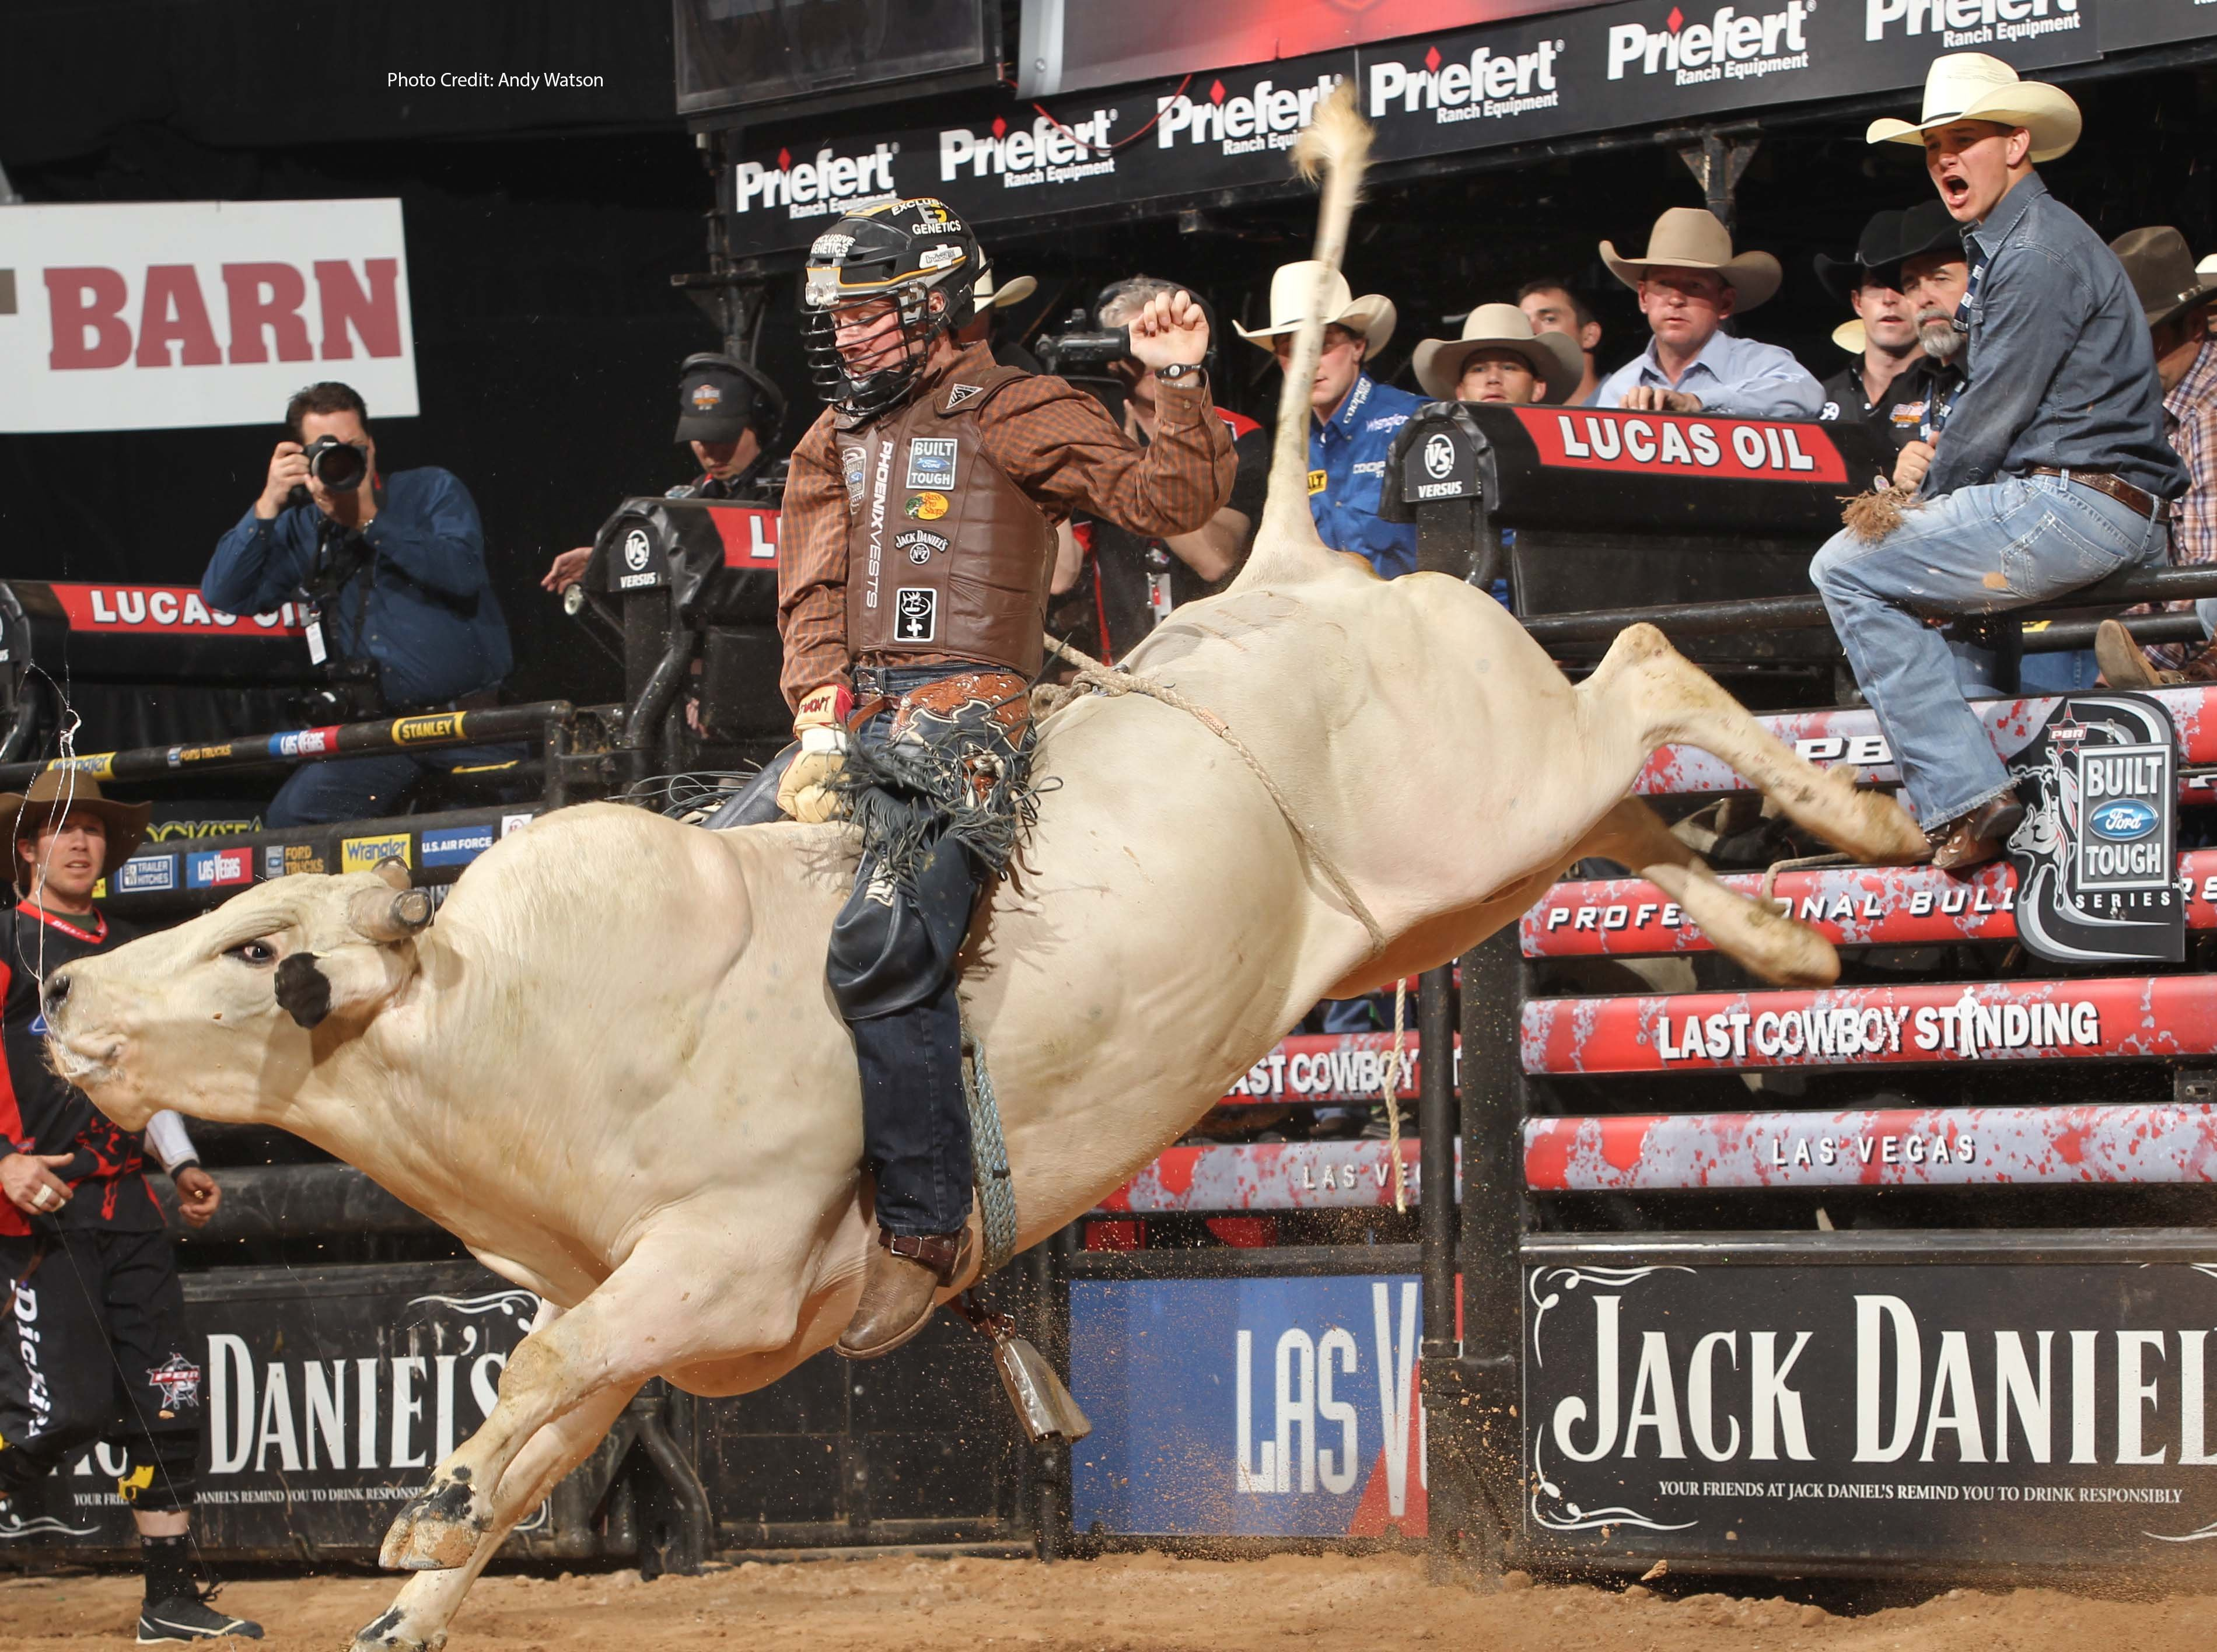 Bull riding wallpapers 88818 dfiles - Bull riding wallpapers ...